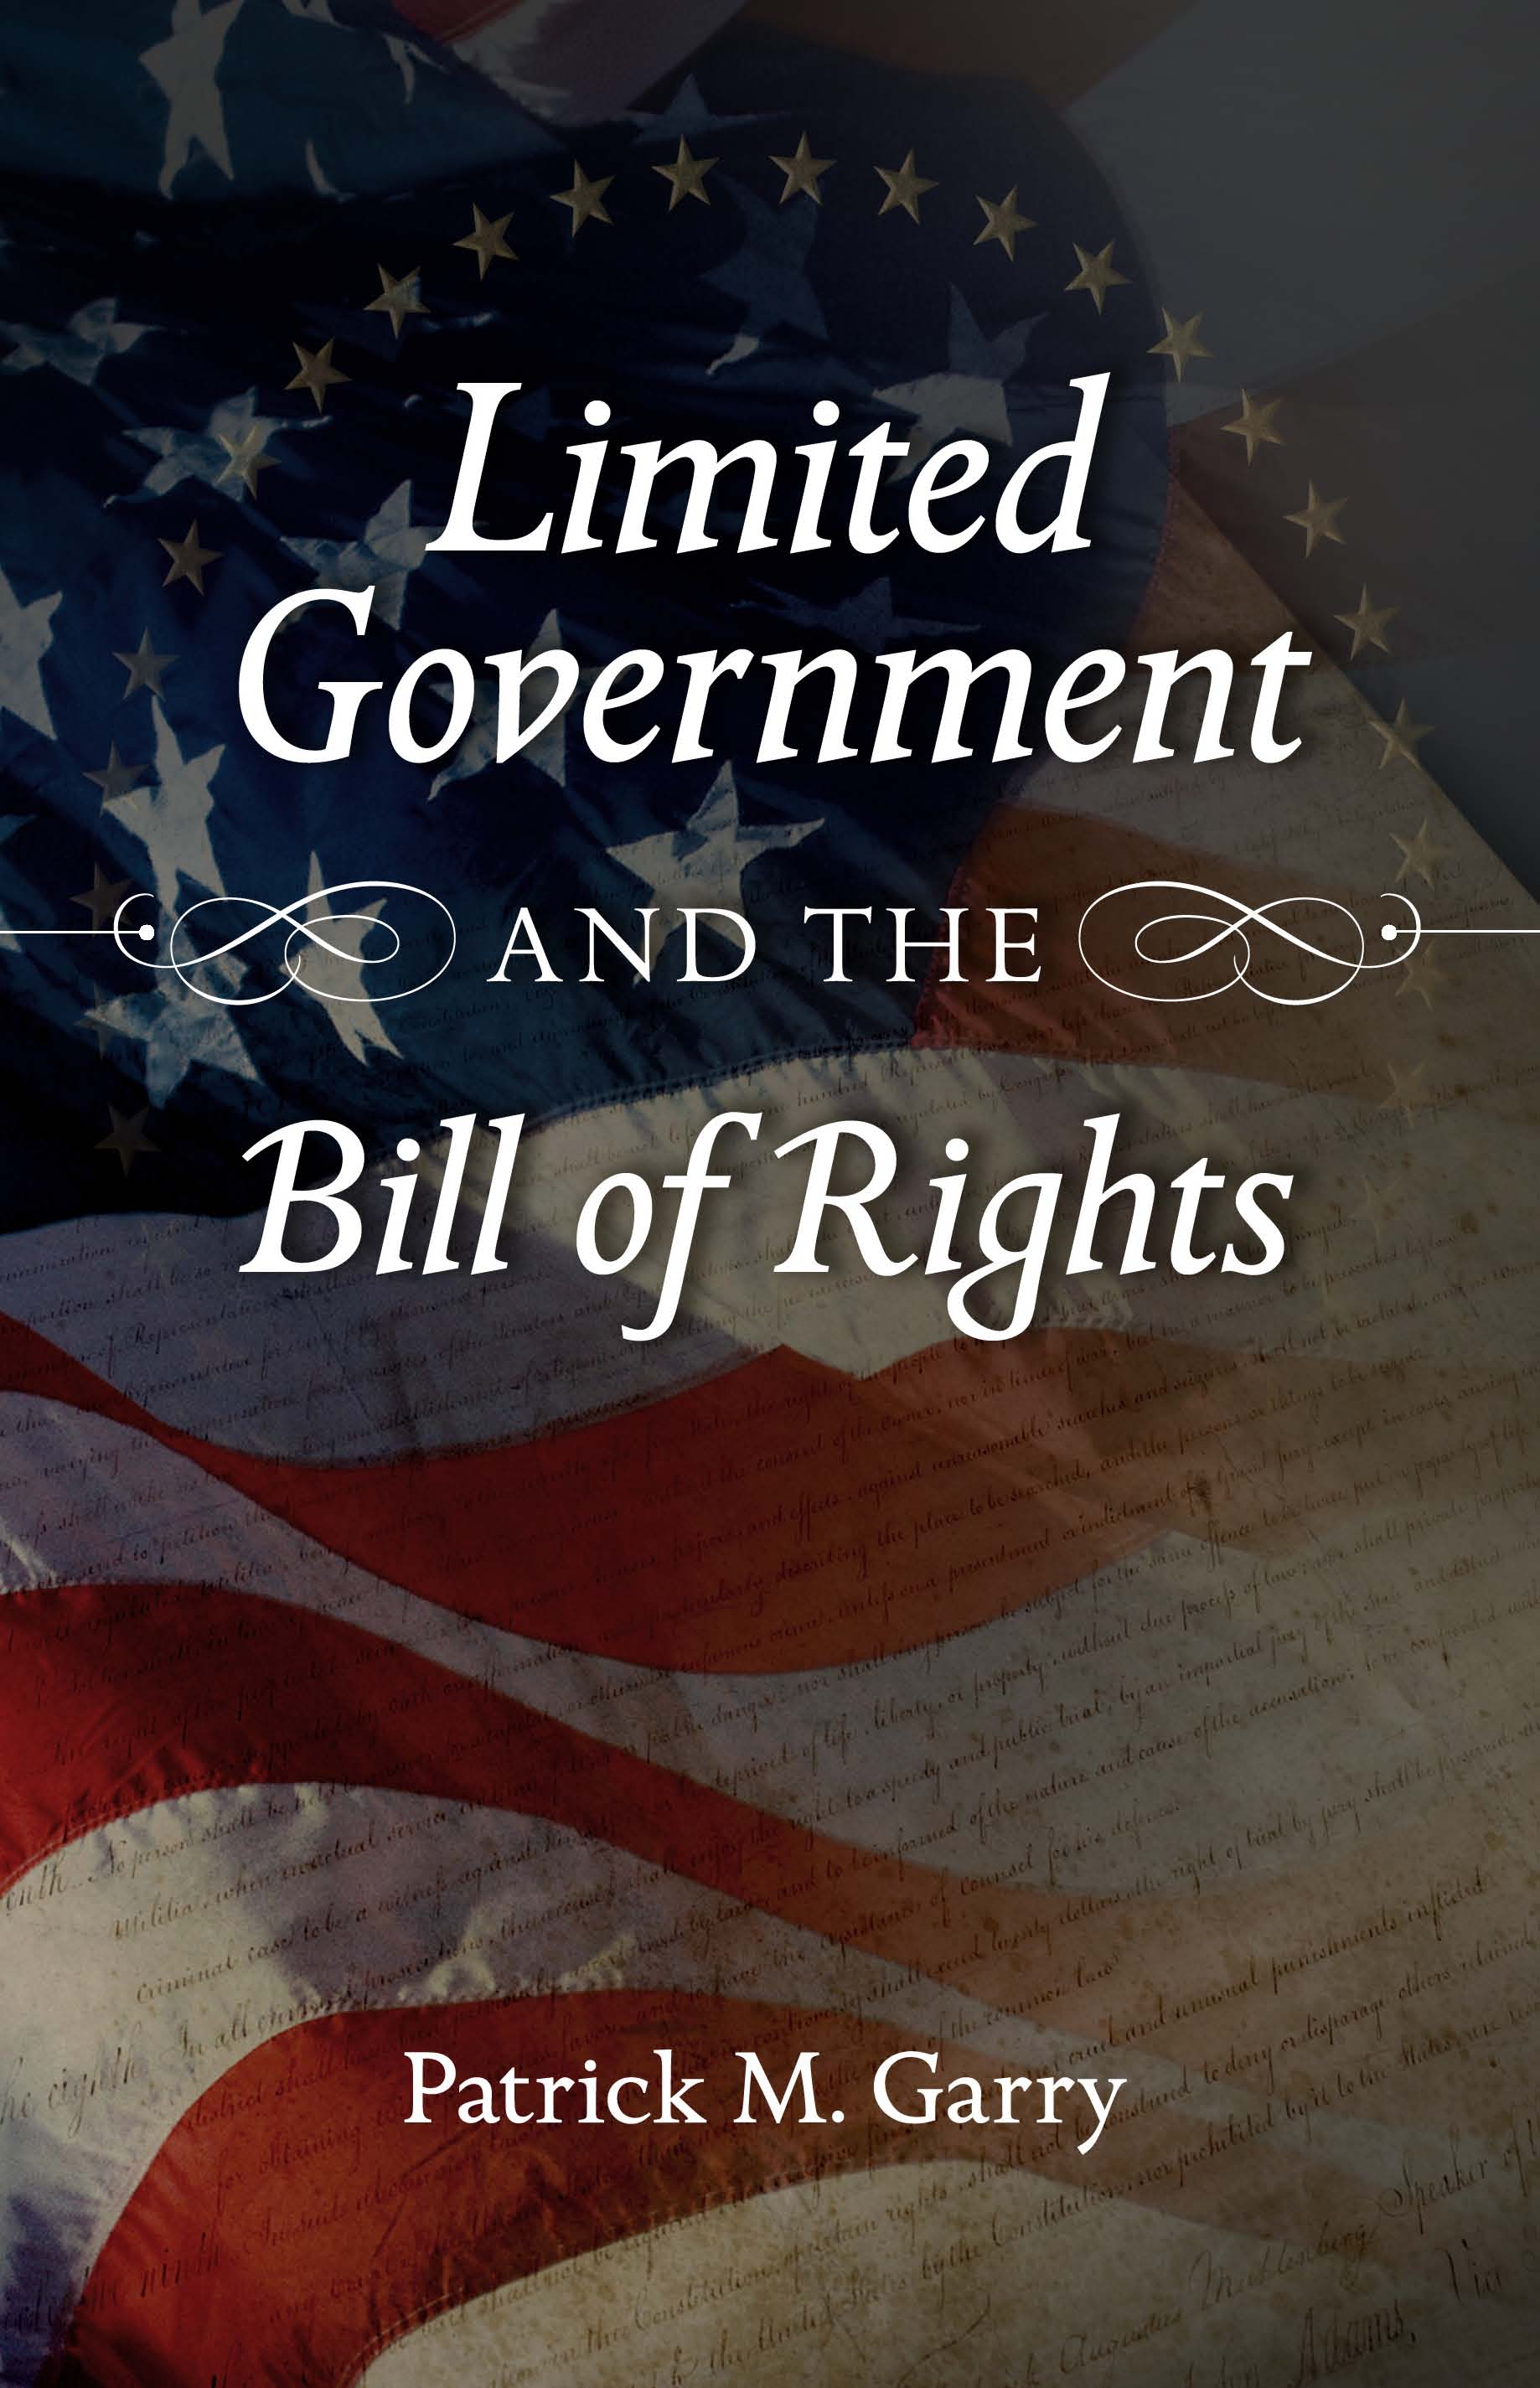 Limited Government And The Bill Of Rights Patrick Garry